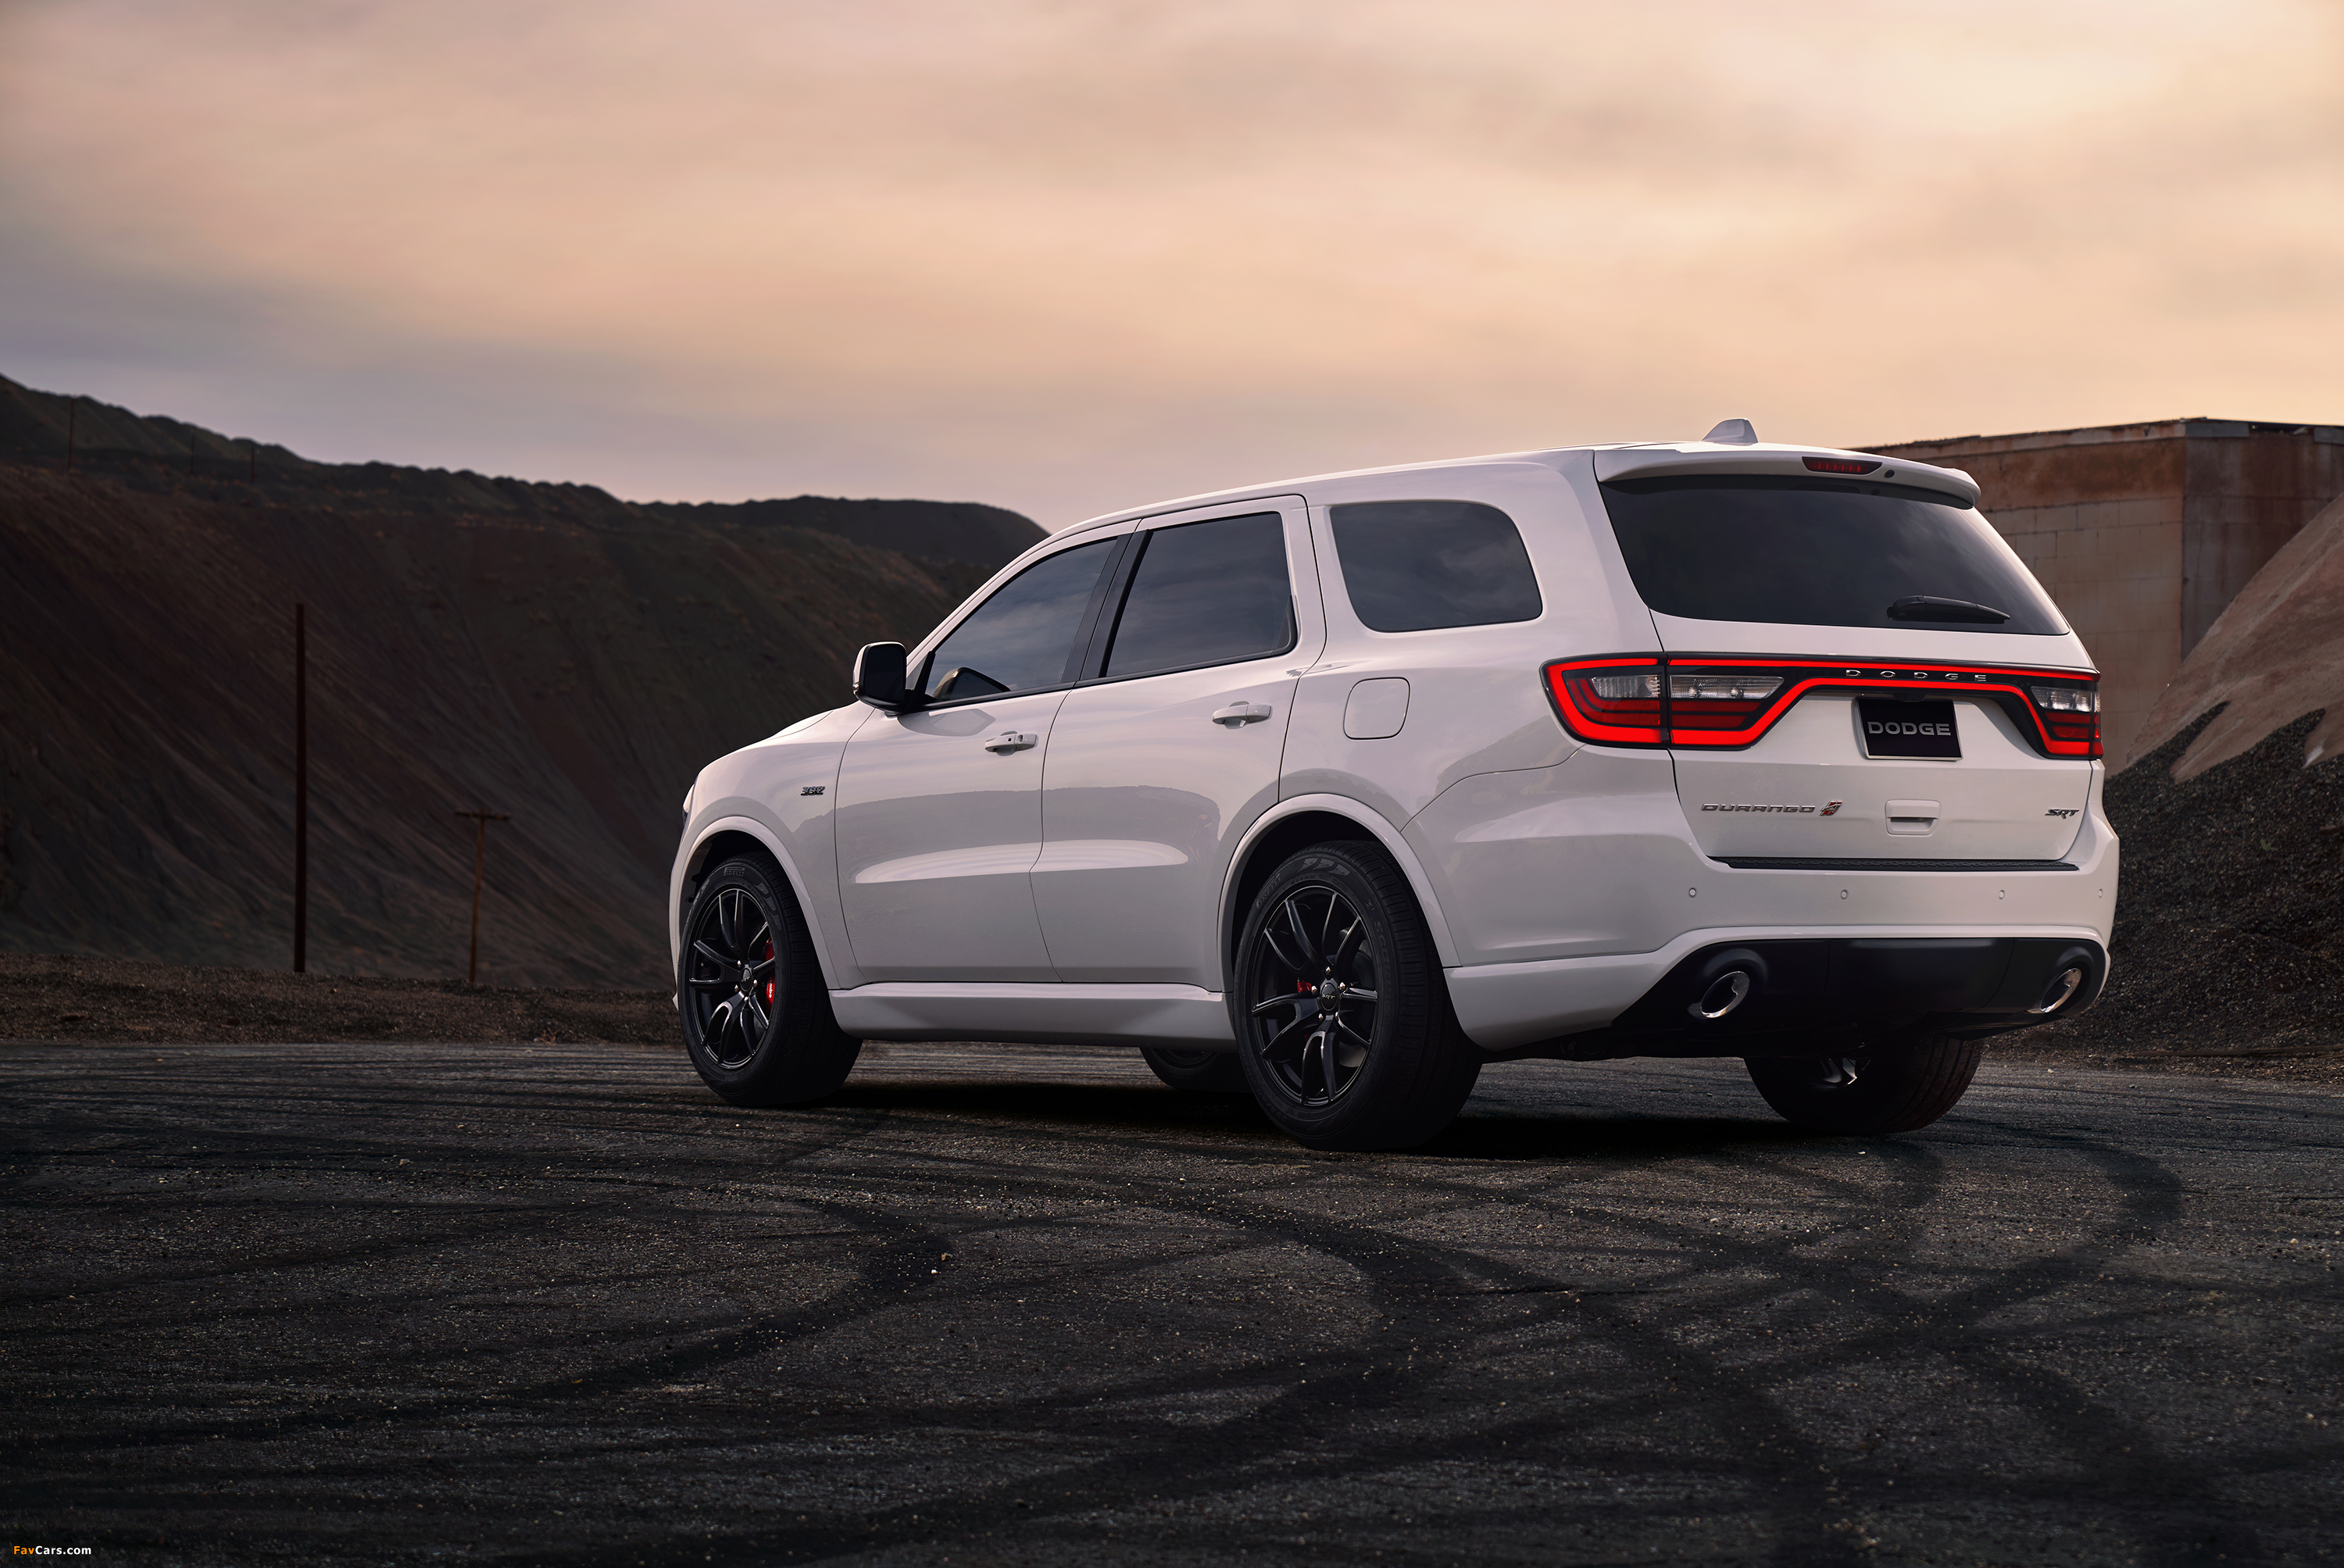 2018 Dodge Durango Srt Wd 2017 Wallpapers 3000x2007